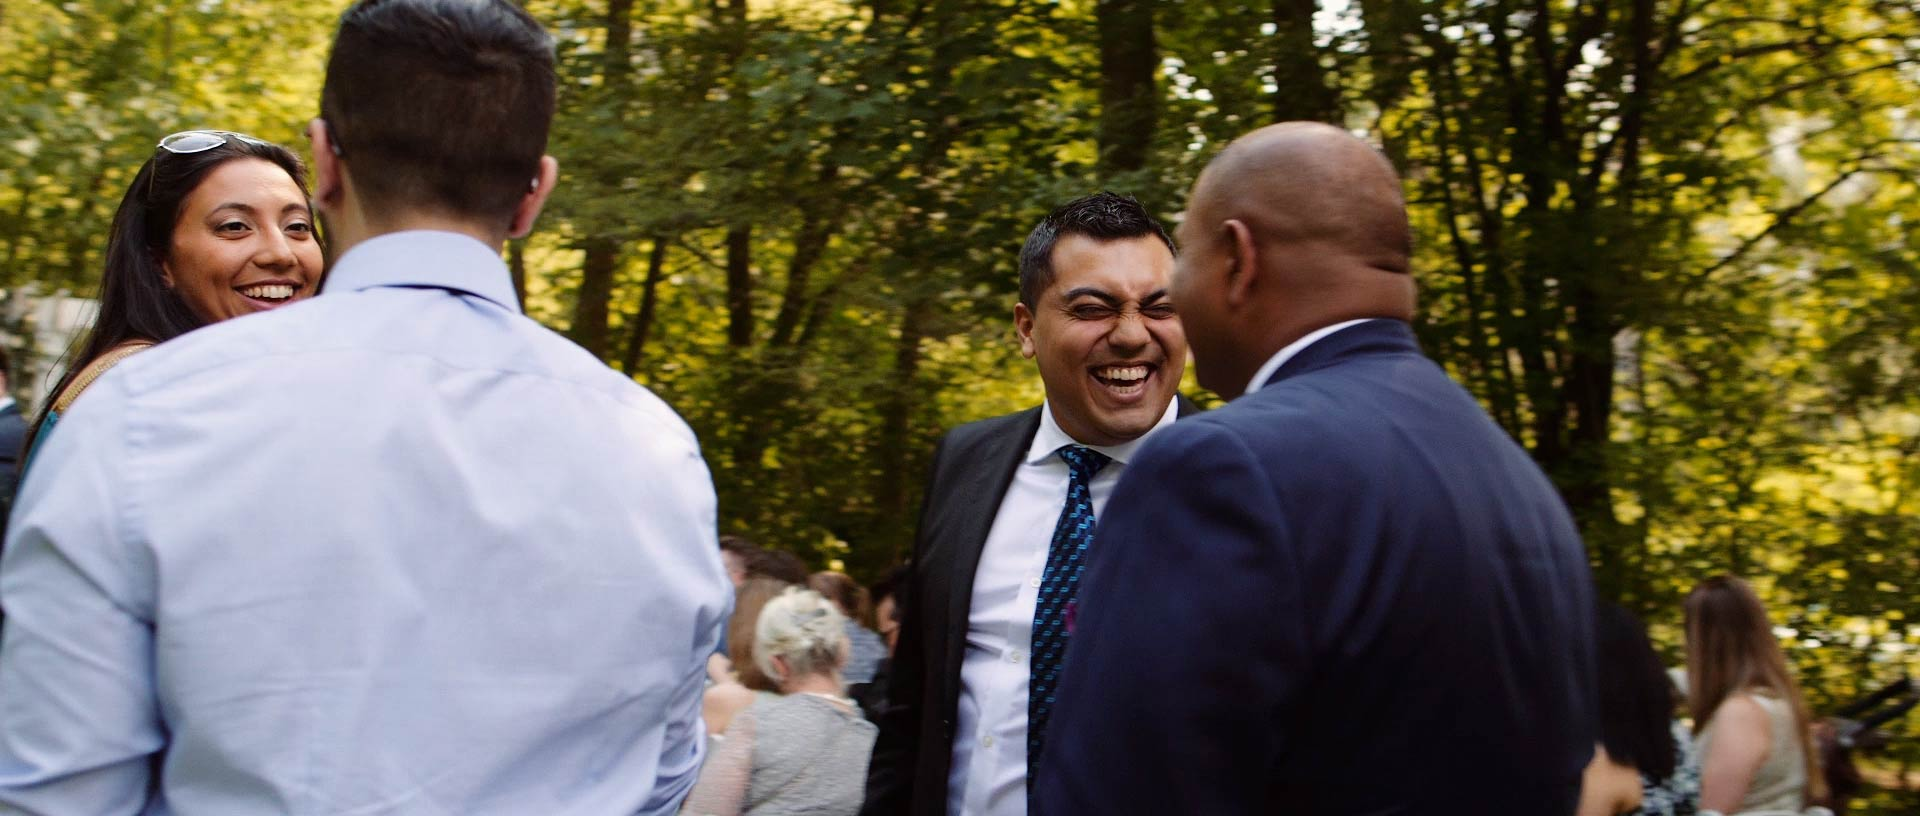 ancaster mill wedding outdoor ceremony